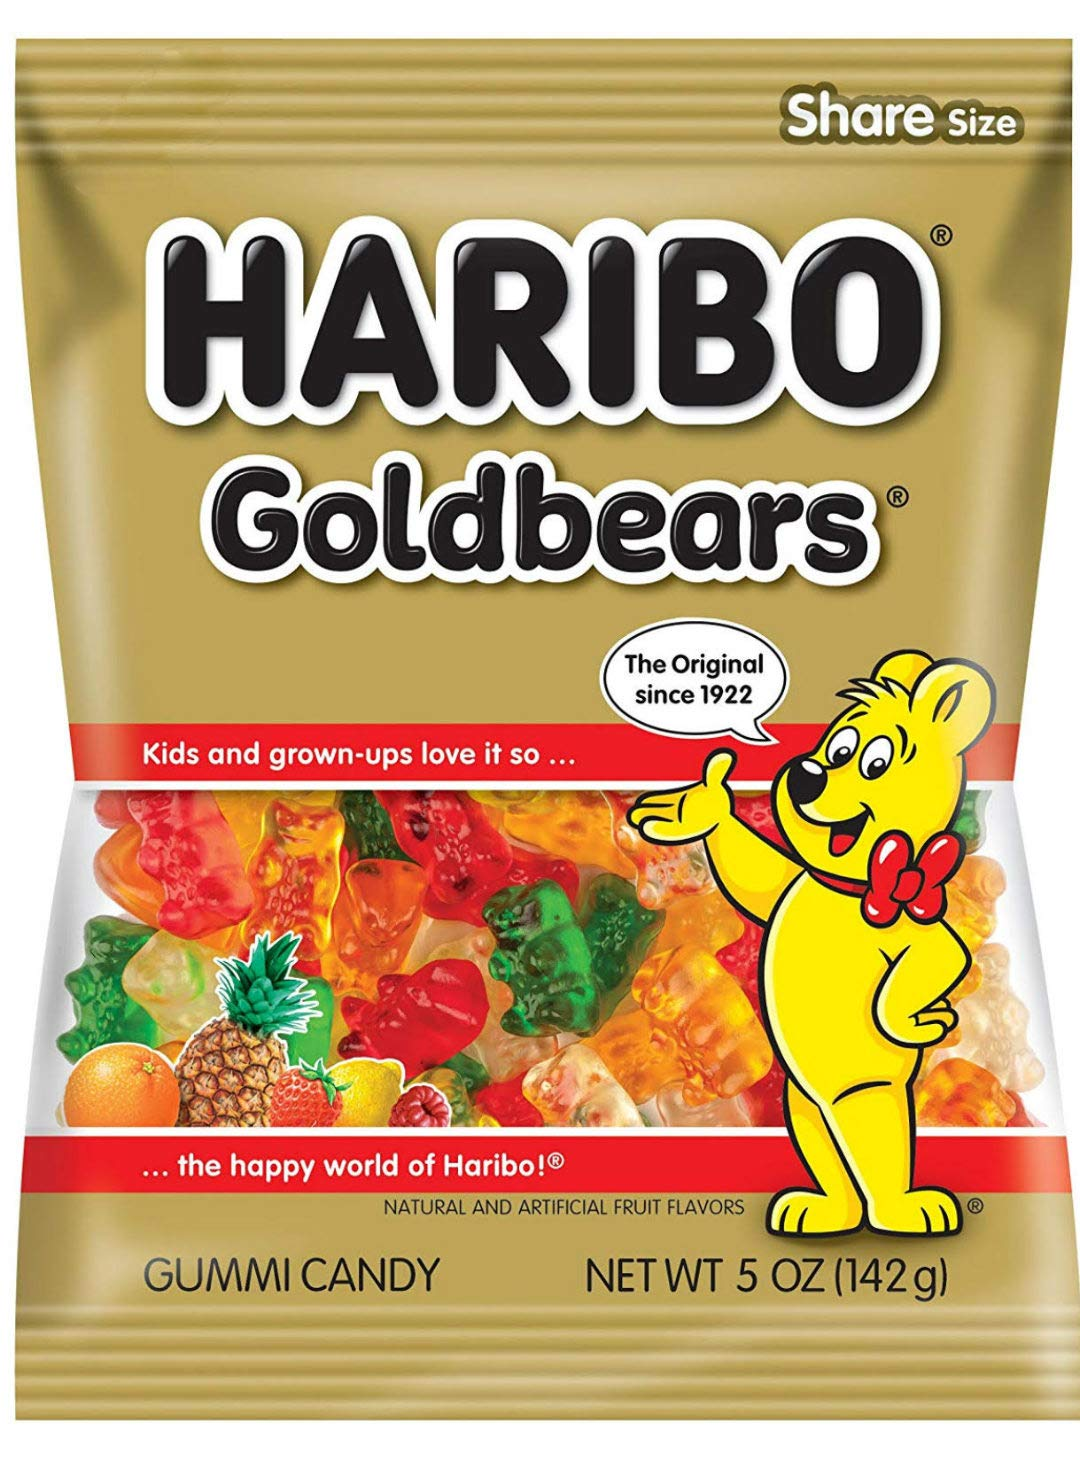 Haribo Gummi Bears 5oz by Haribo